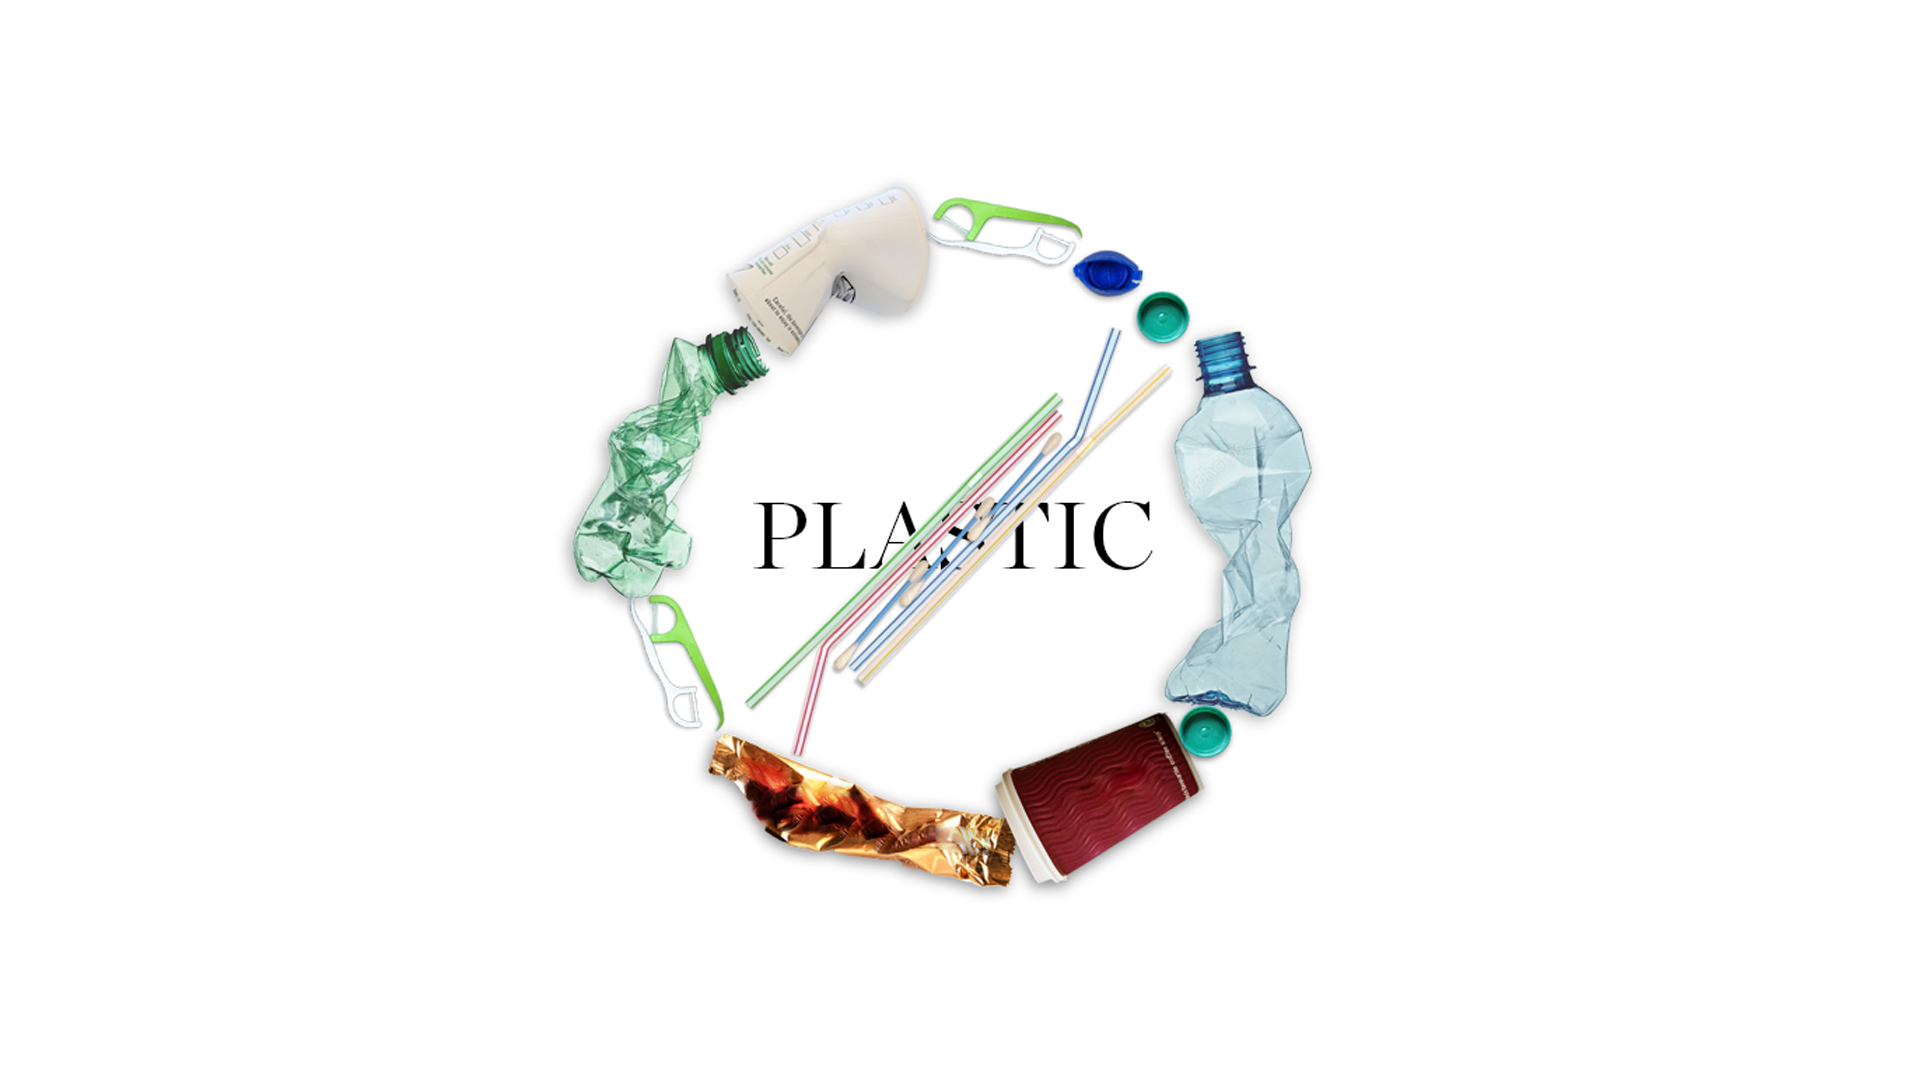 No Plastic Collective